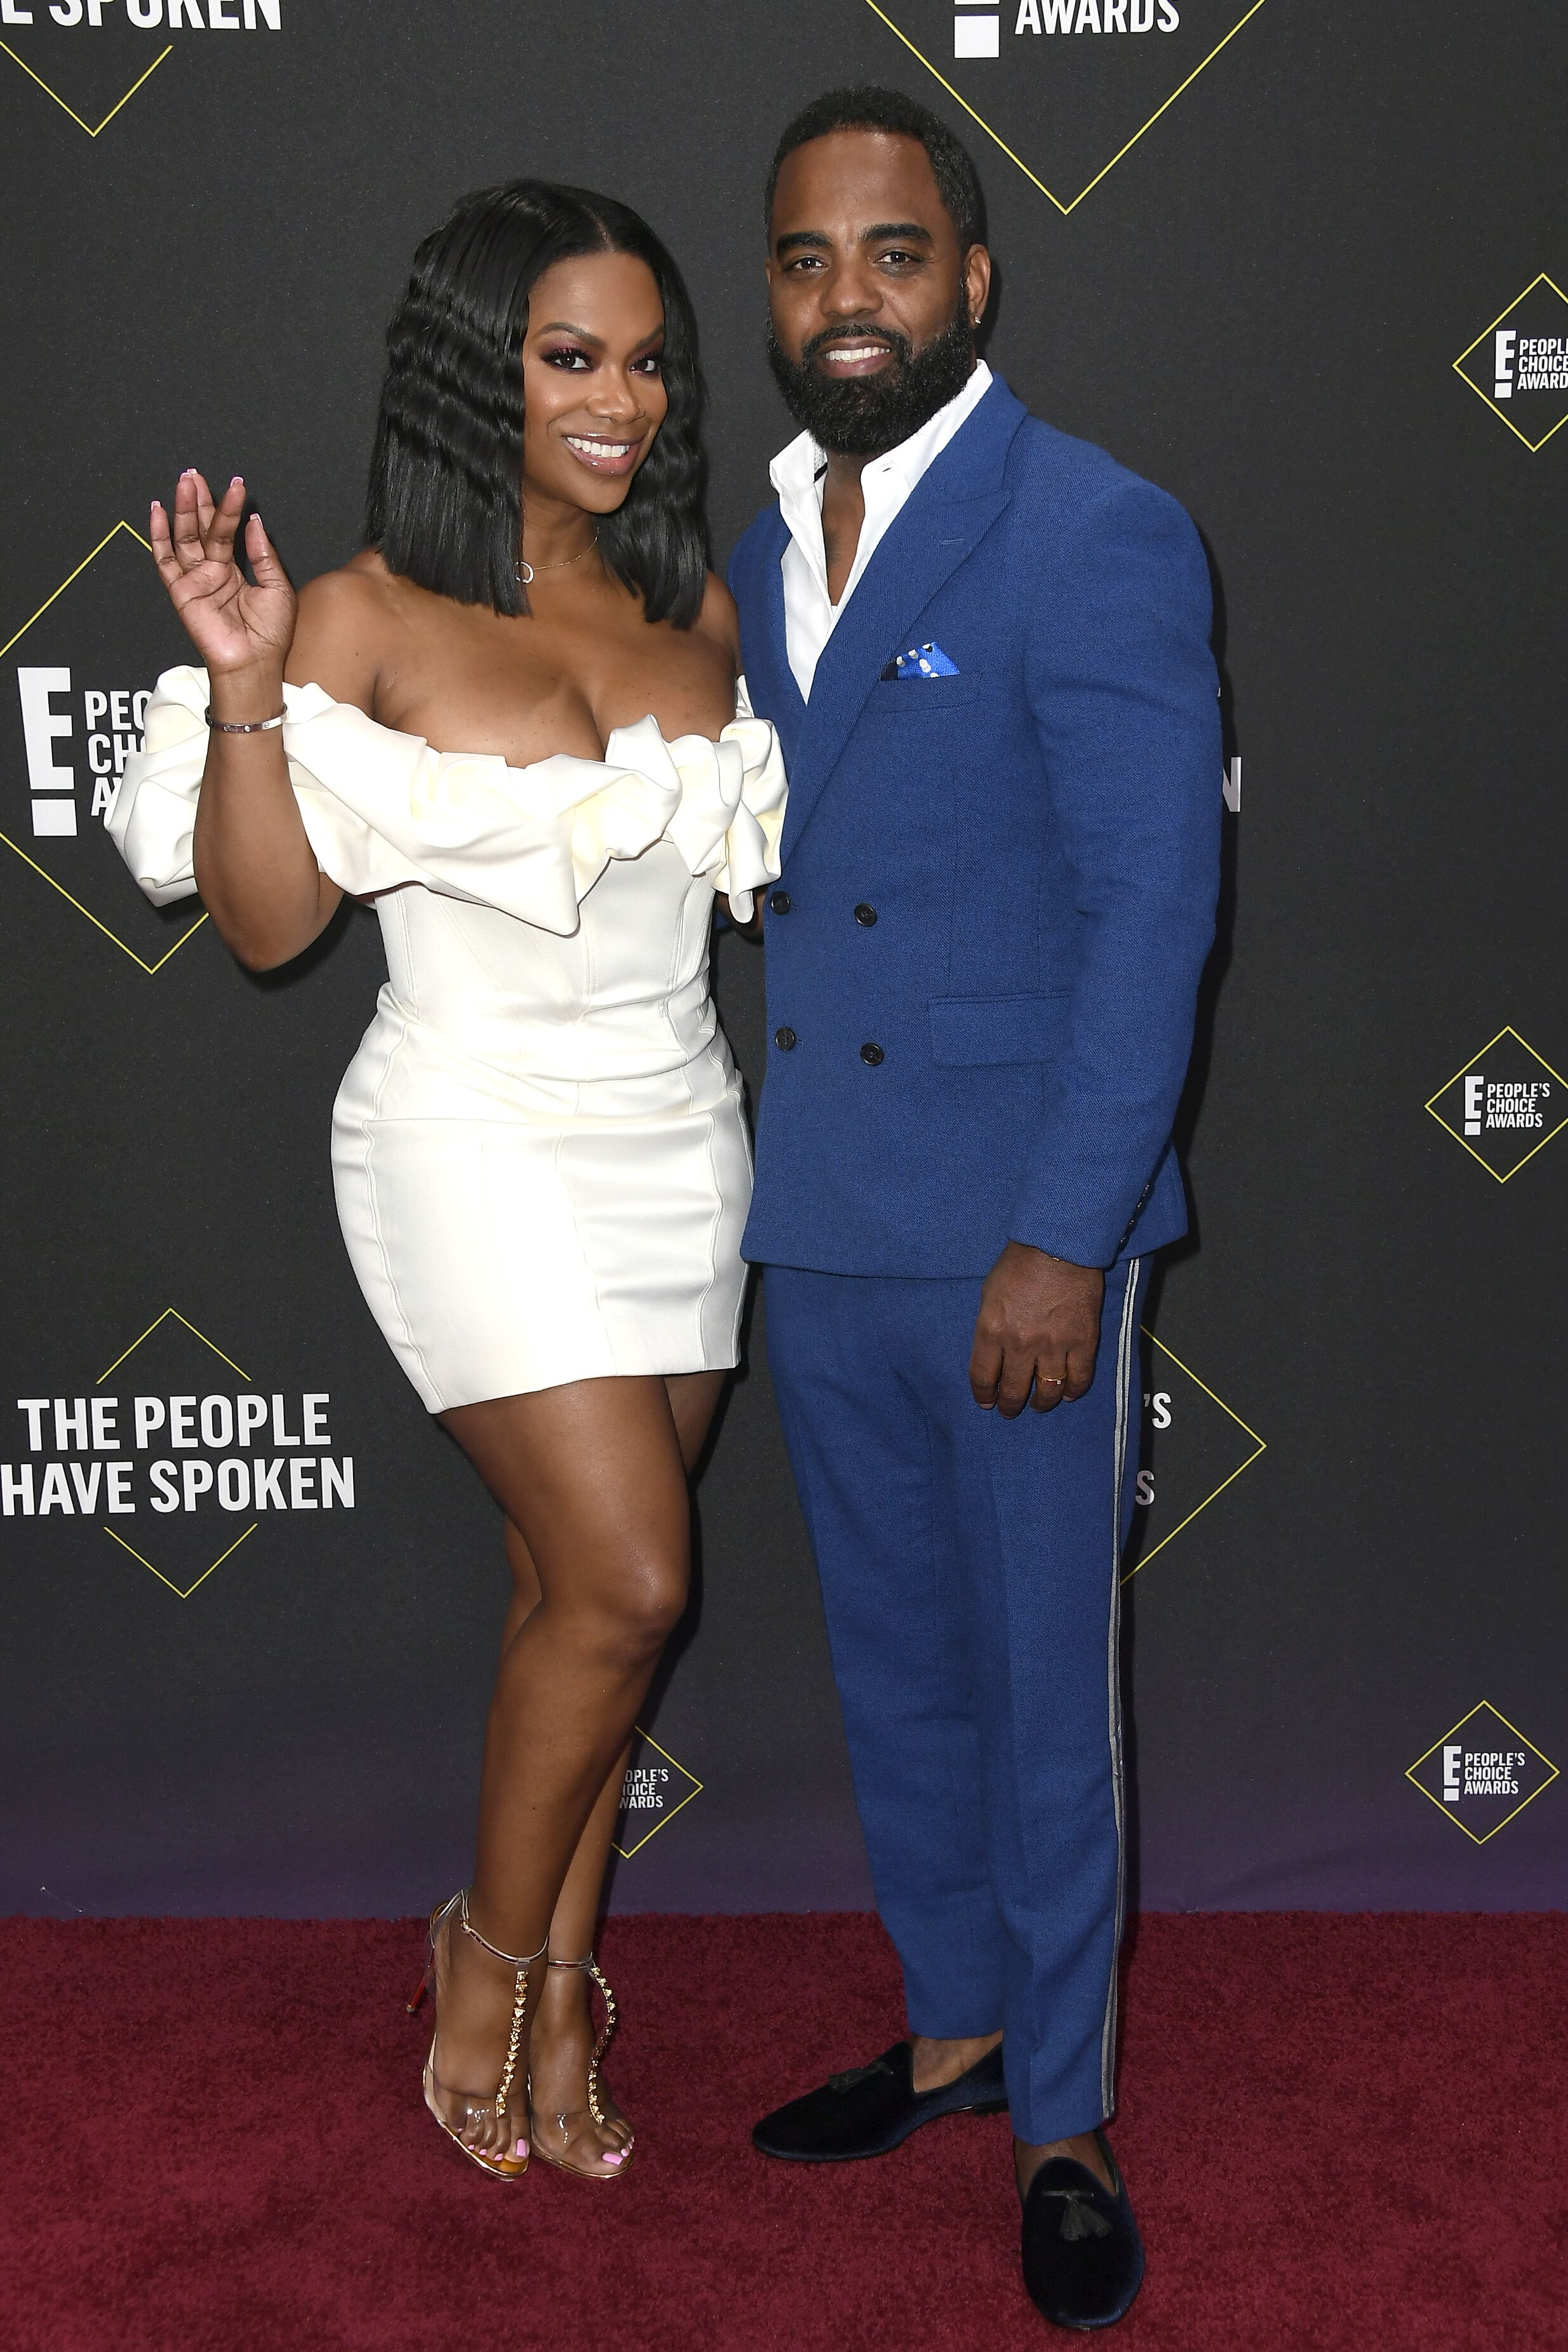 Kandi Burruss and Todd Tucker attend the E! People's Choice Awards 2019 | Source: Getty Images/GlobalImagesUkraine